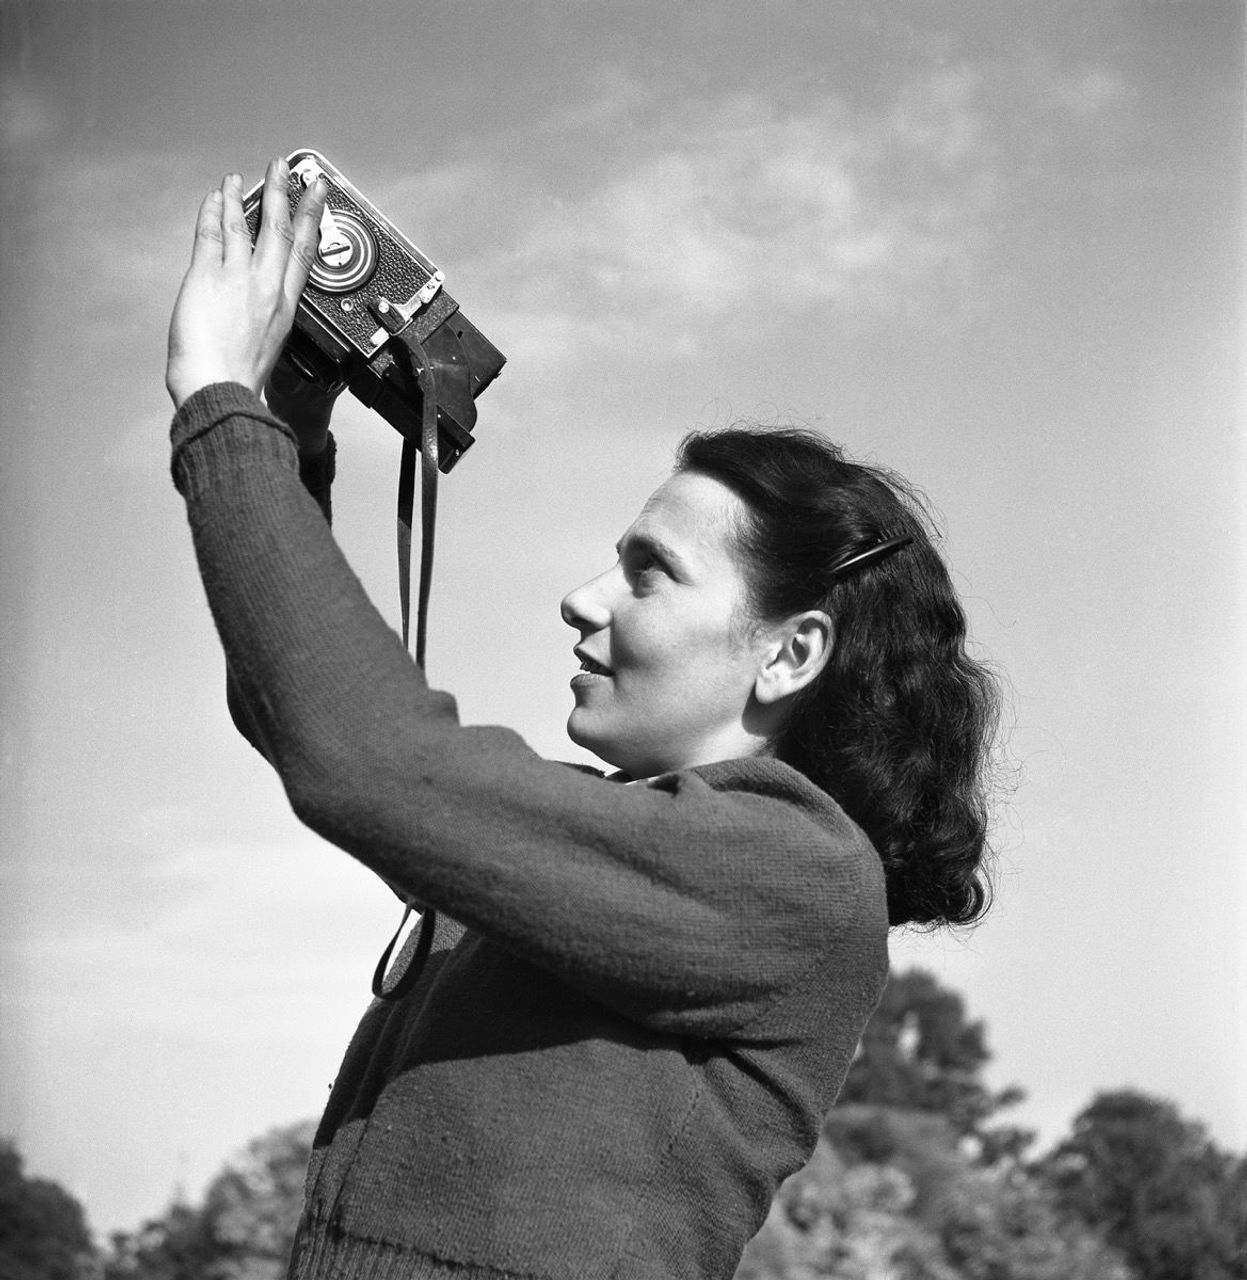 Henk Jonker, Maria Austria with camera, 1946. Courtesy of the Jewish Historical Museum, Amsterdam